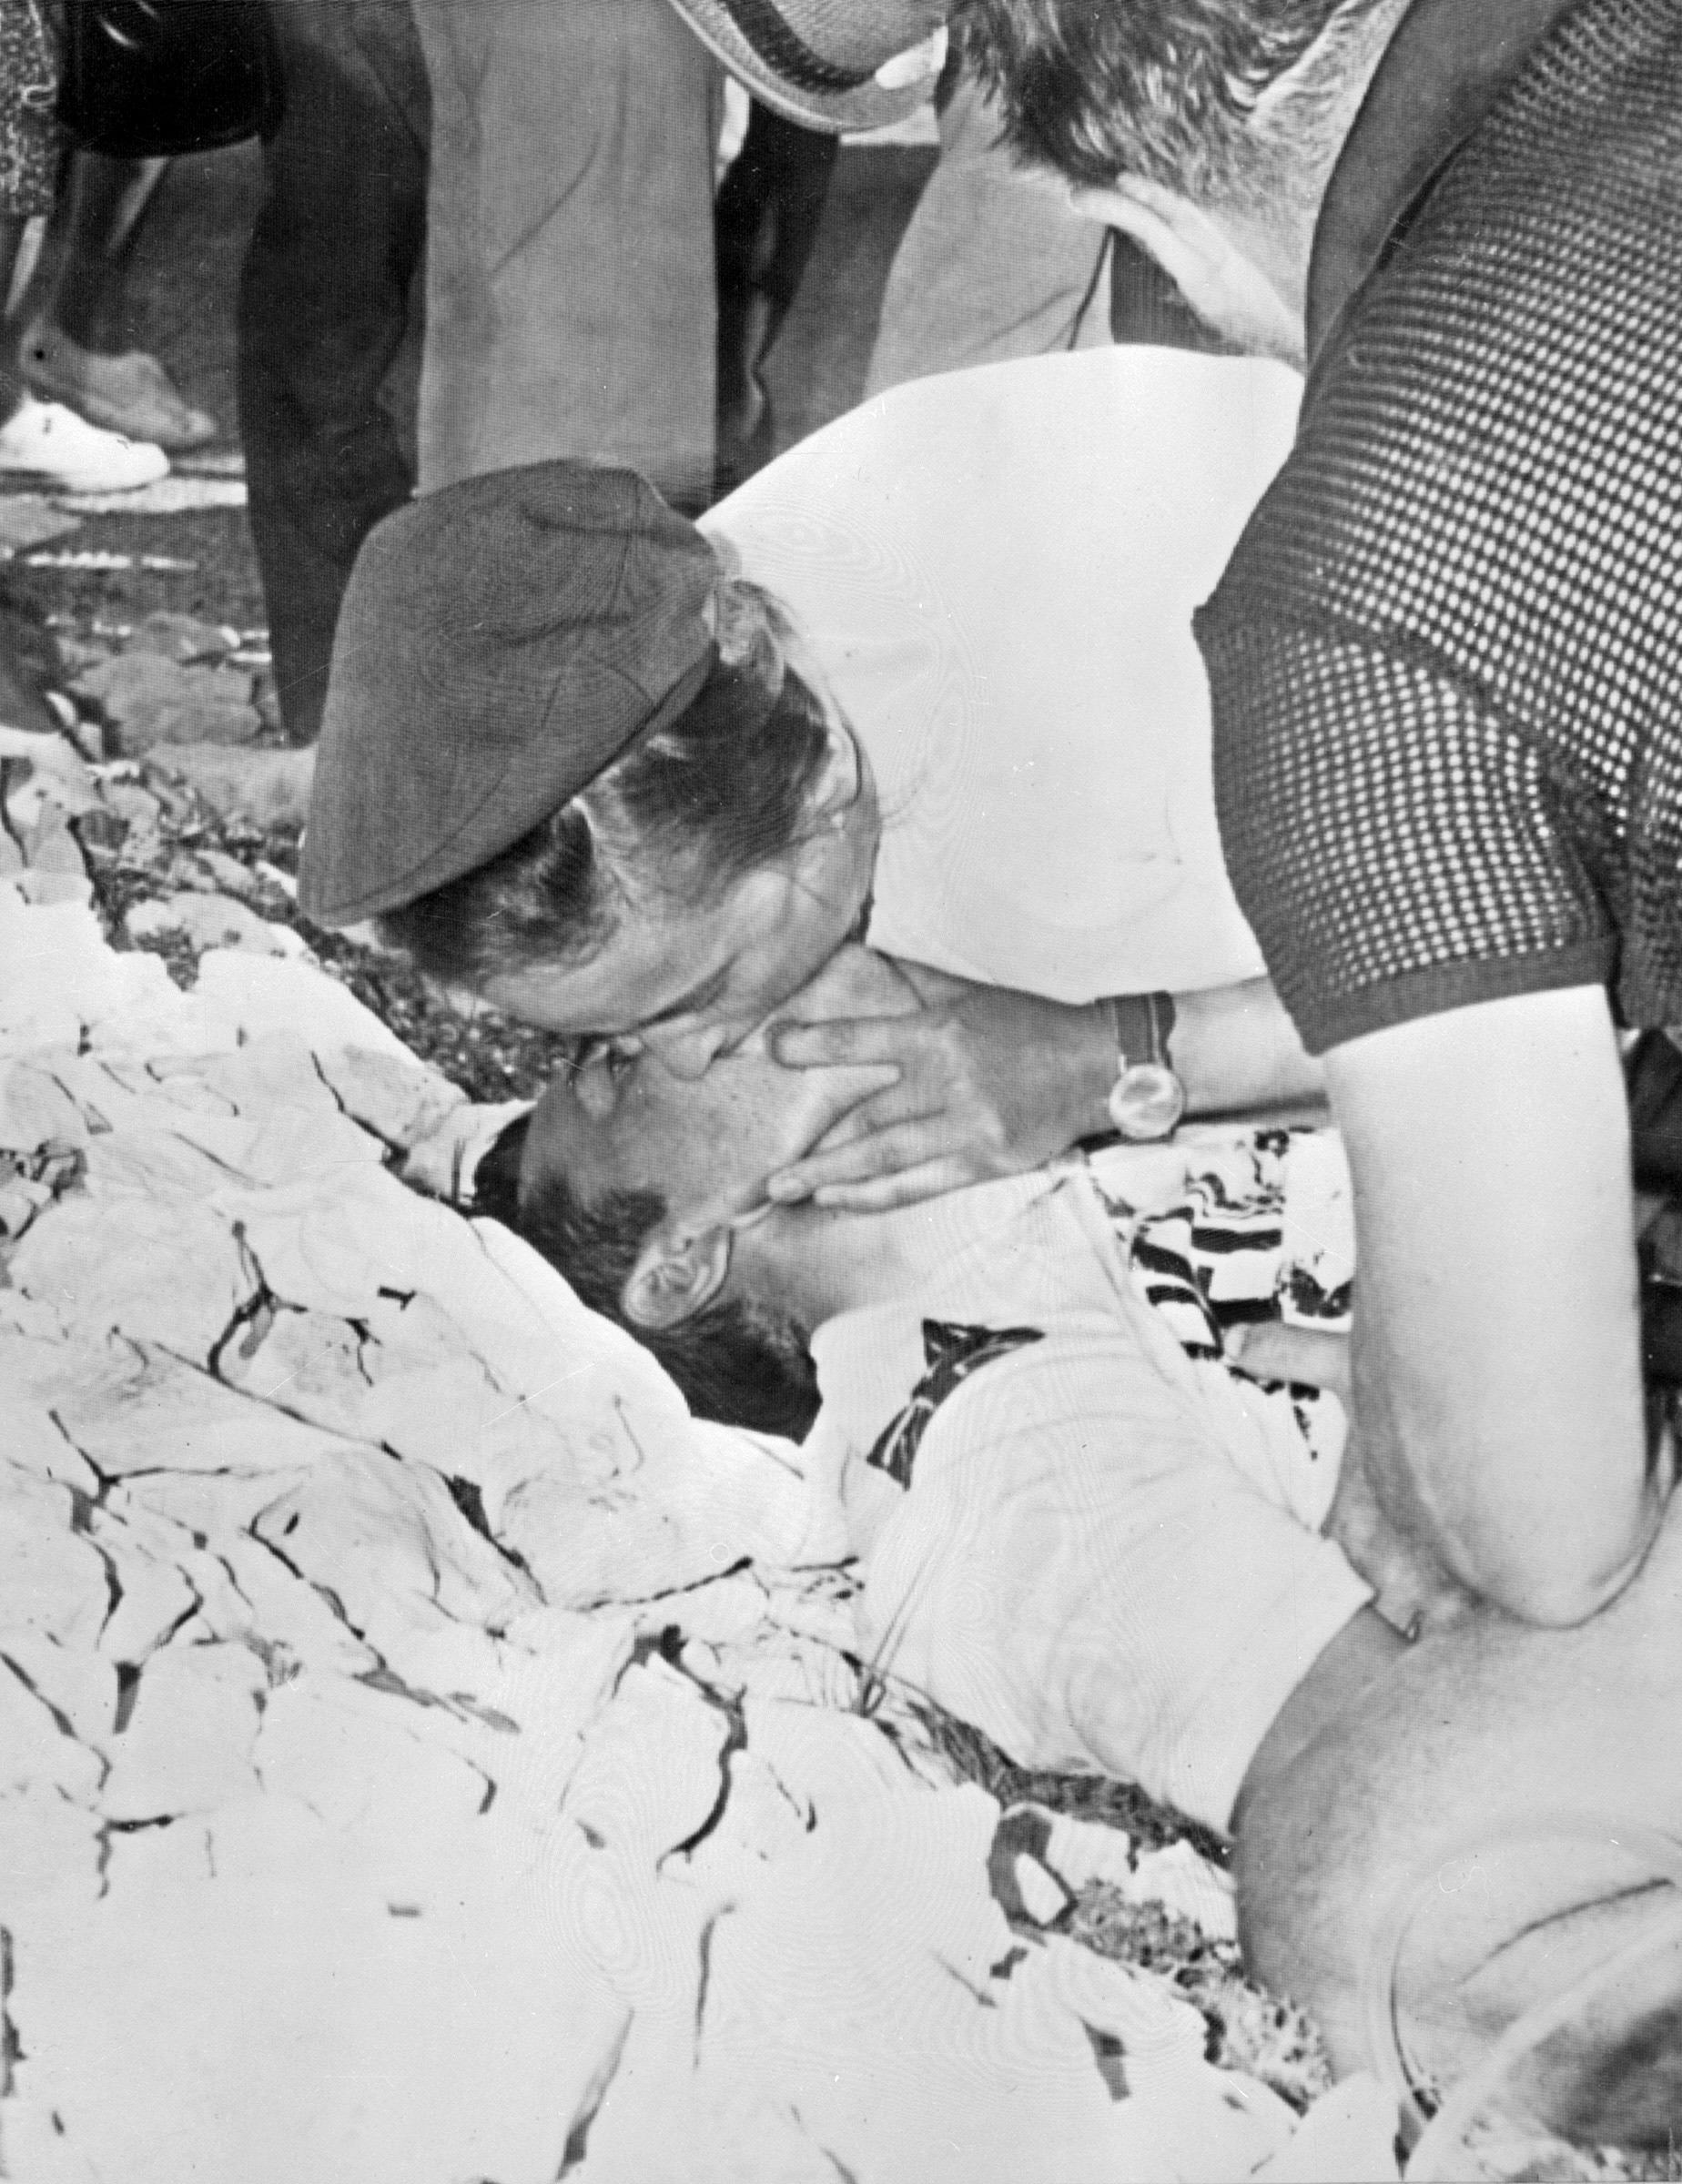 Tom Simpson could not be resuscitated despite the best efforts of medical staff on Ventoux